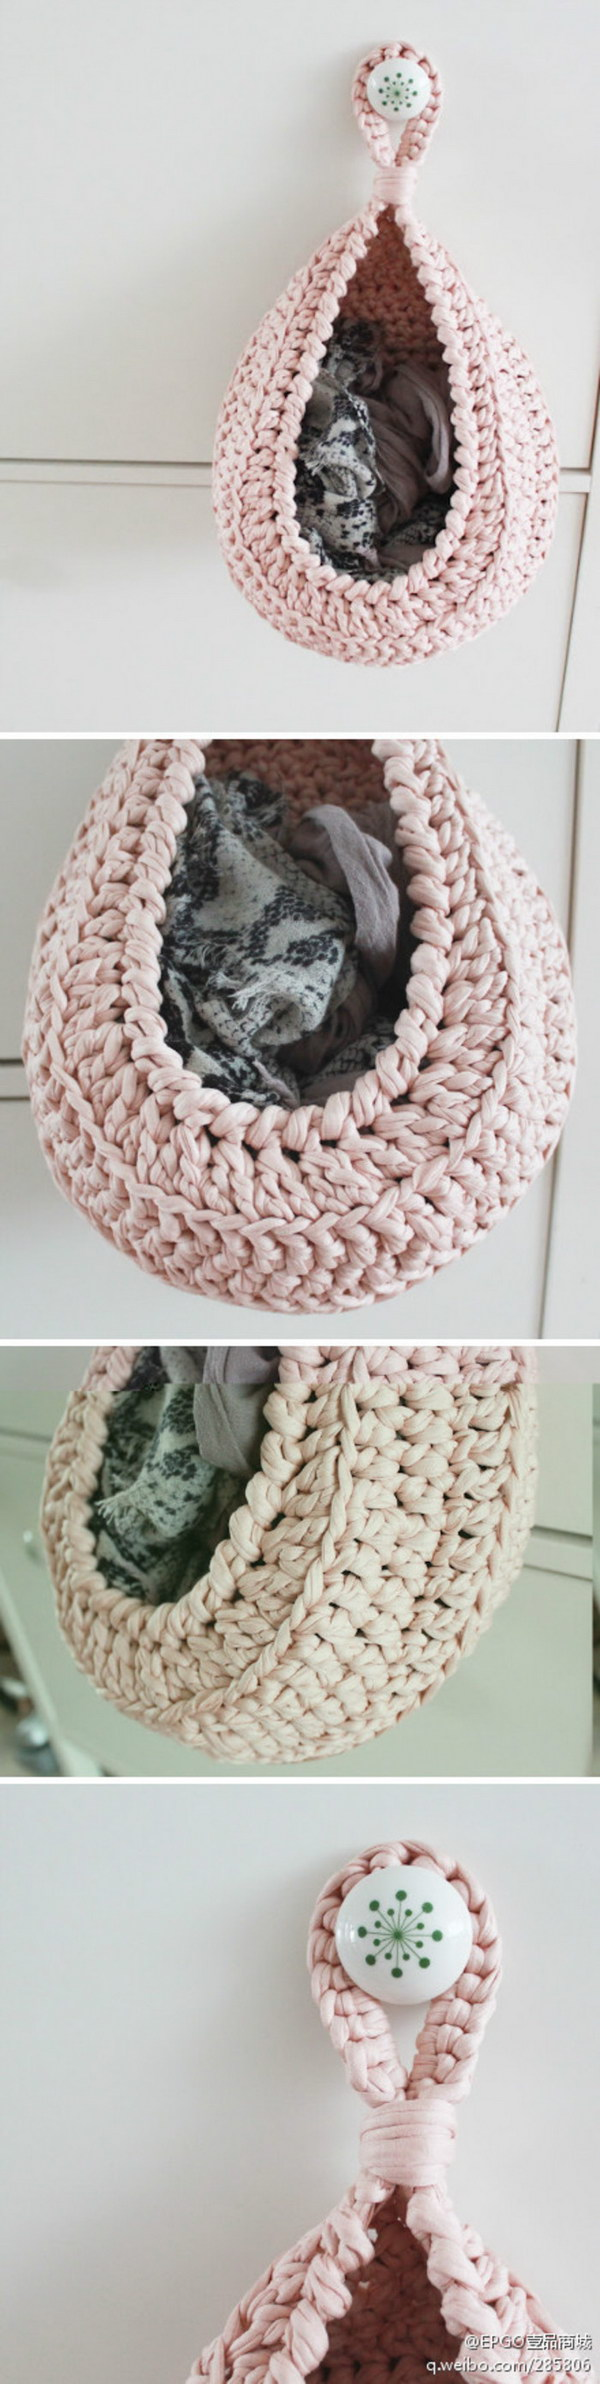 30 Awesome Crochet Projects With Lots of Free Patterns For Beginners ...